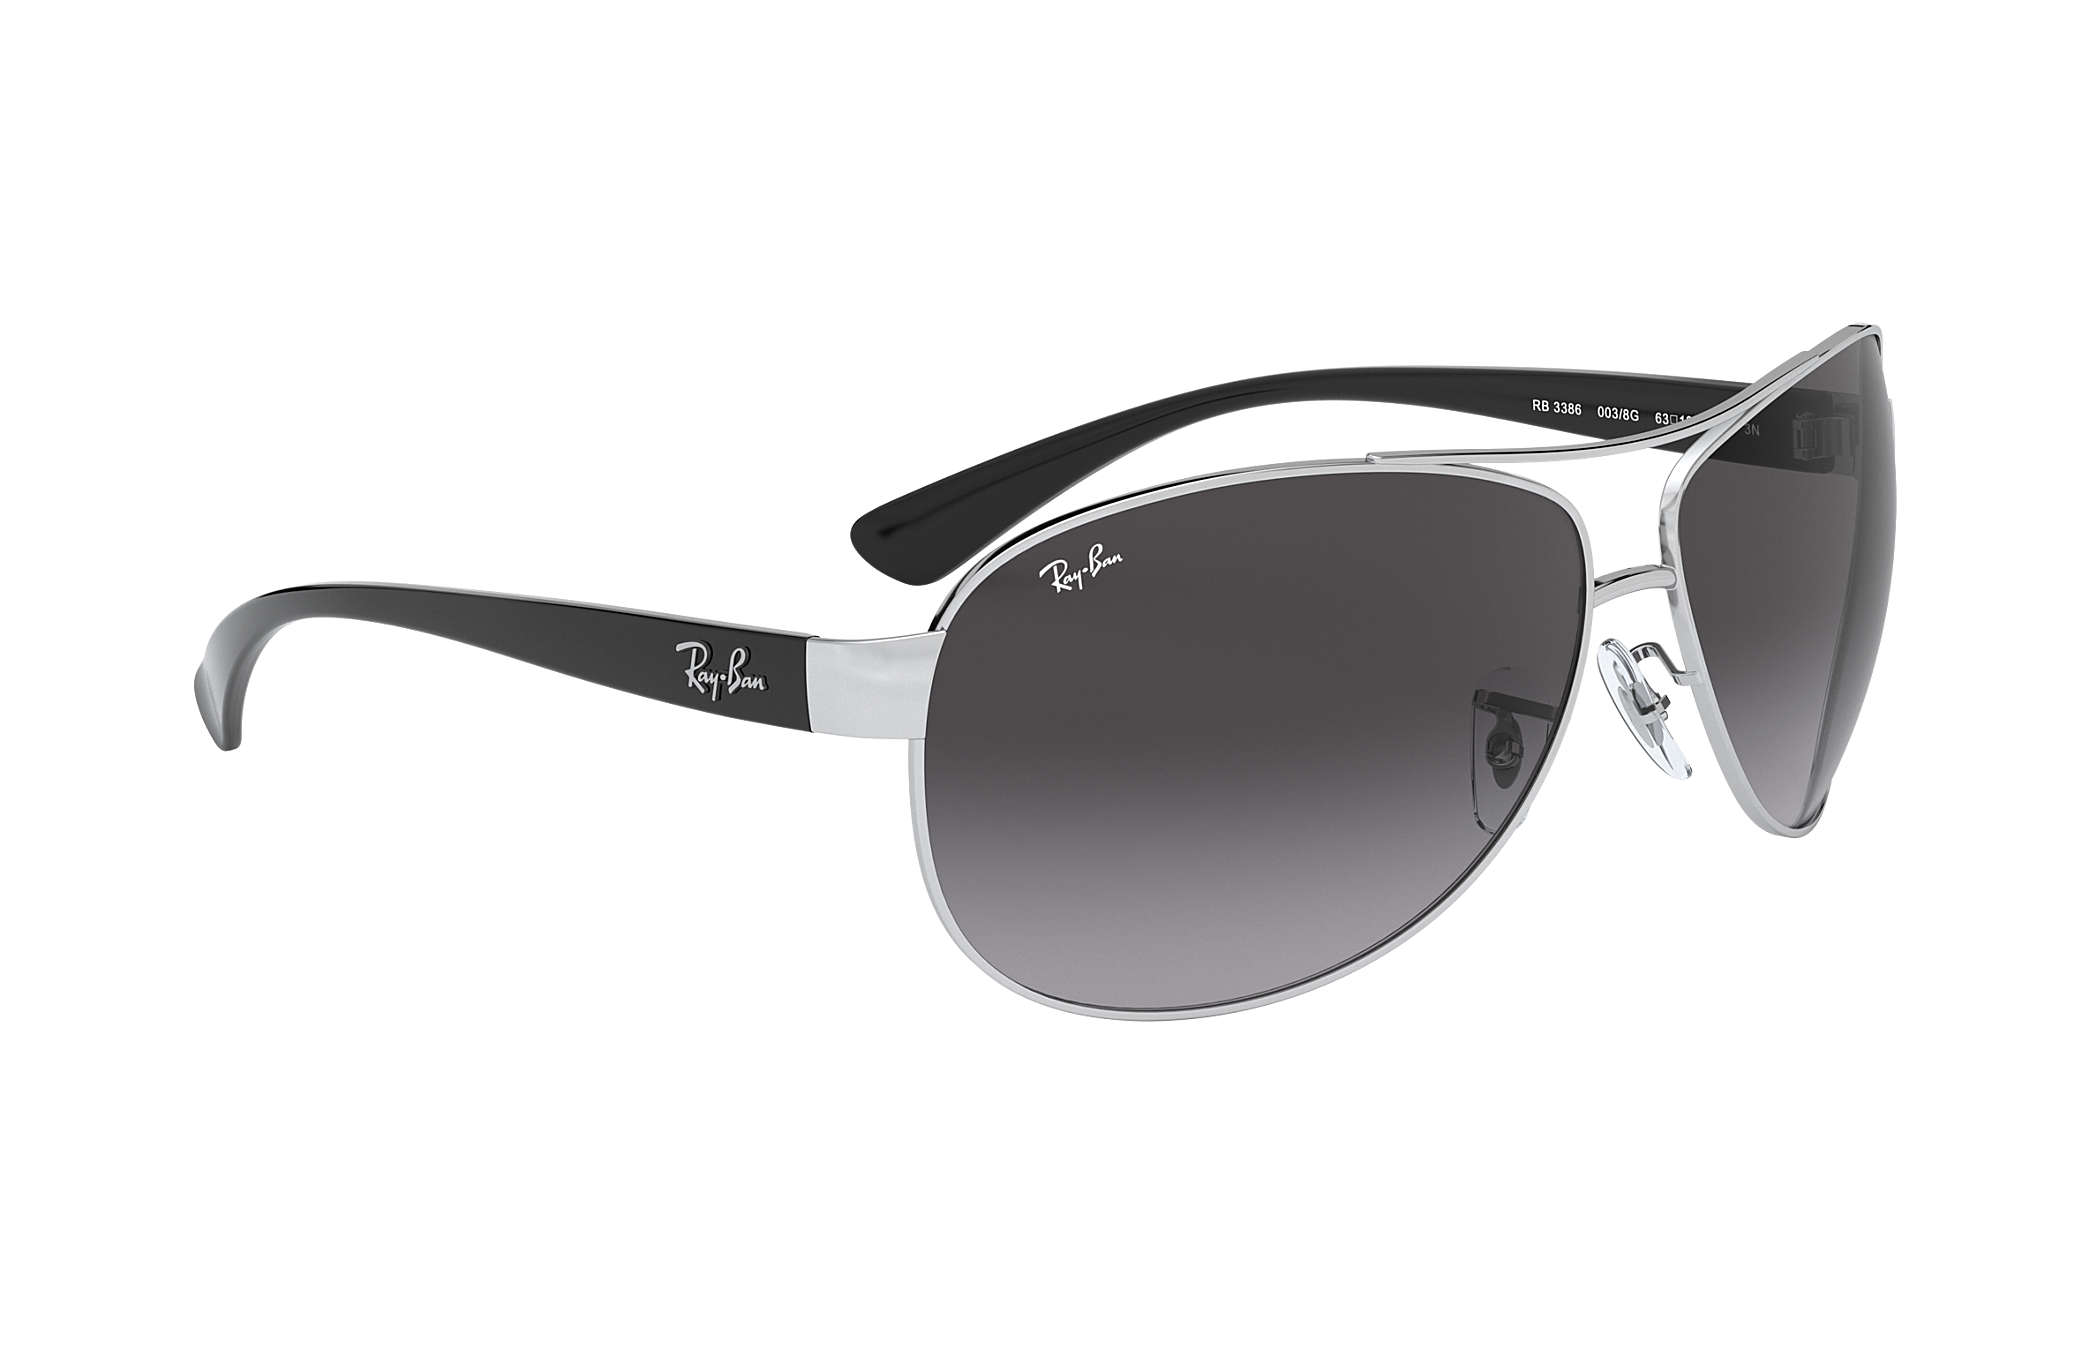 bc9a6f6ef Ray-Ban RB3386 Silver - Metal - Grey Lenses - 0RB3386003/8G67 | Ray ...